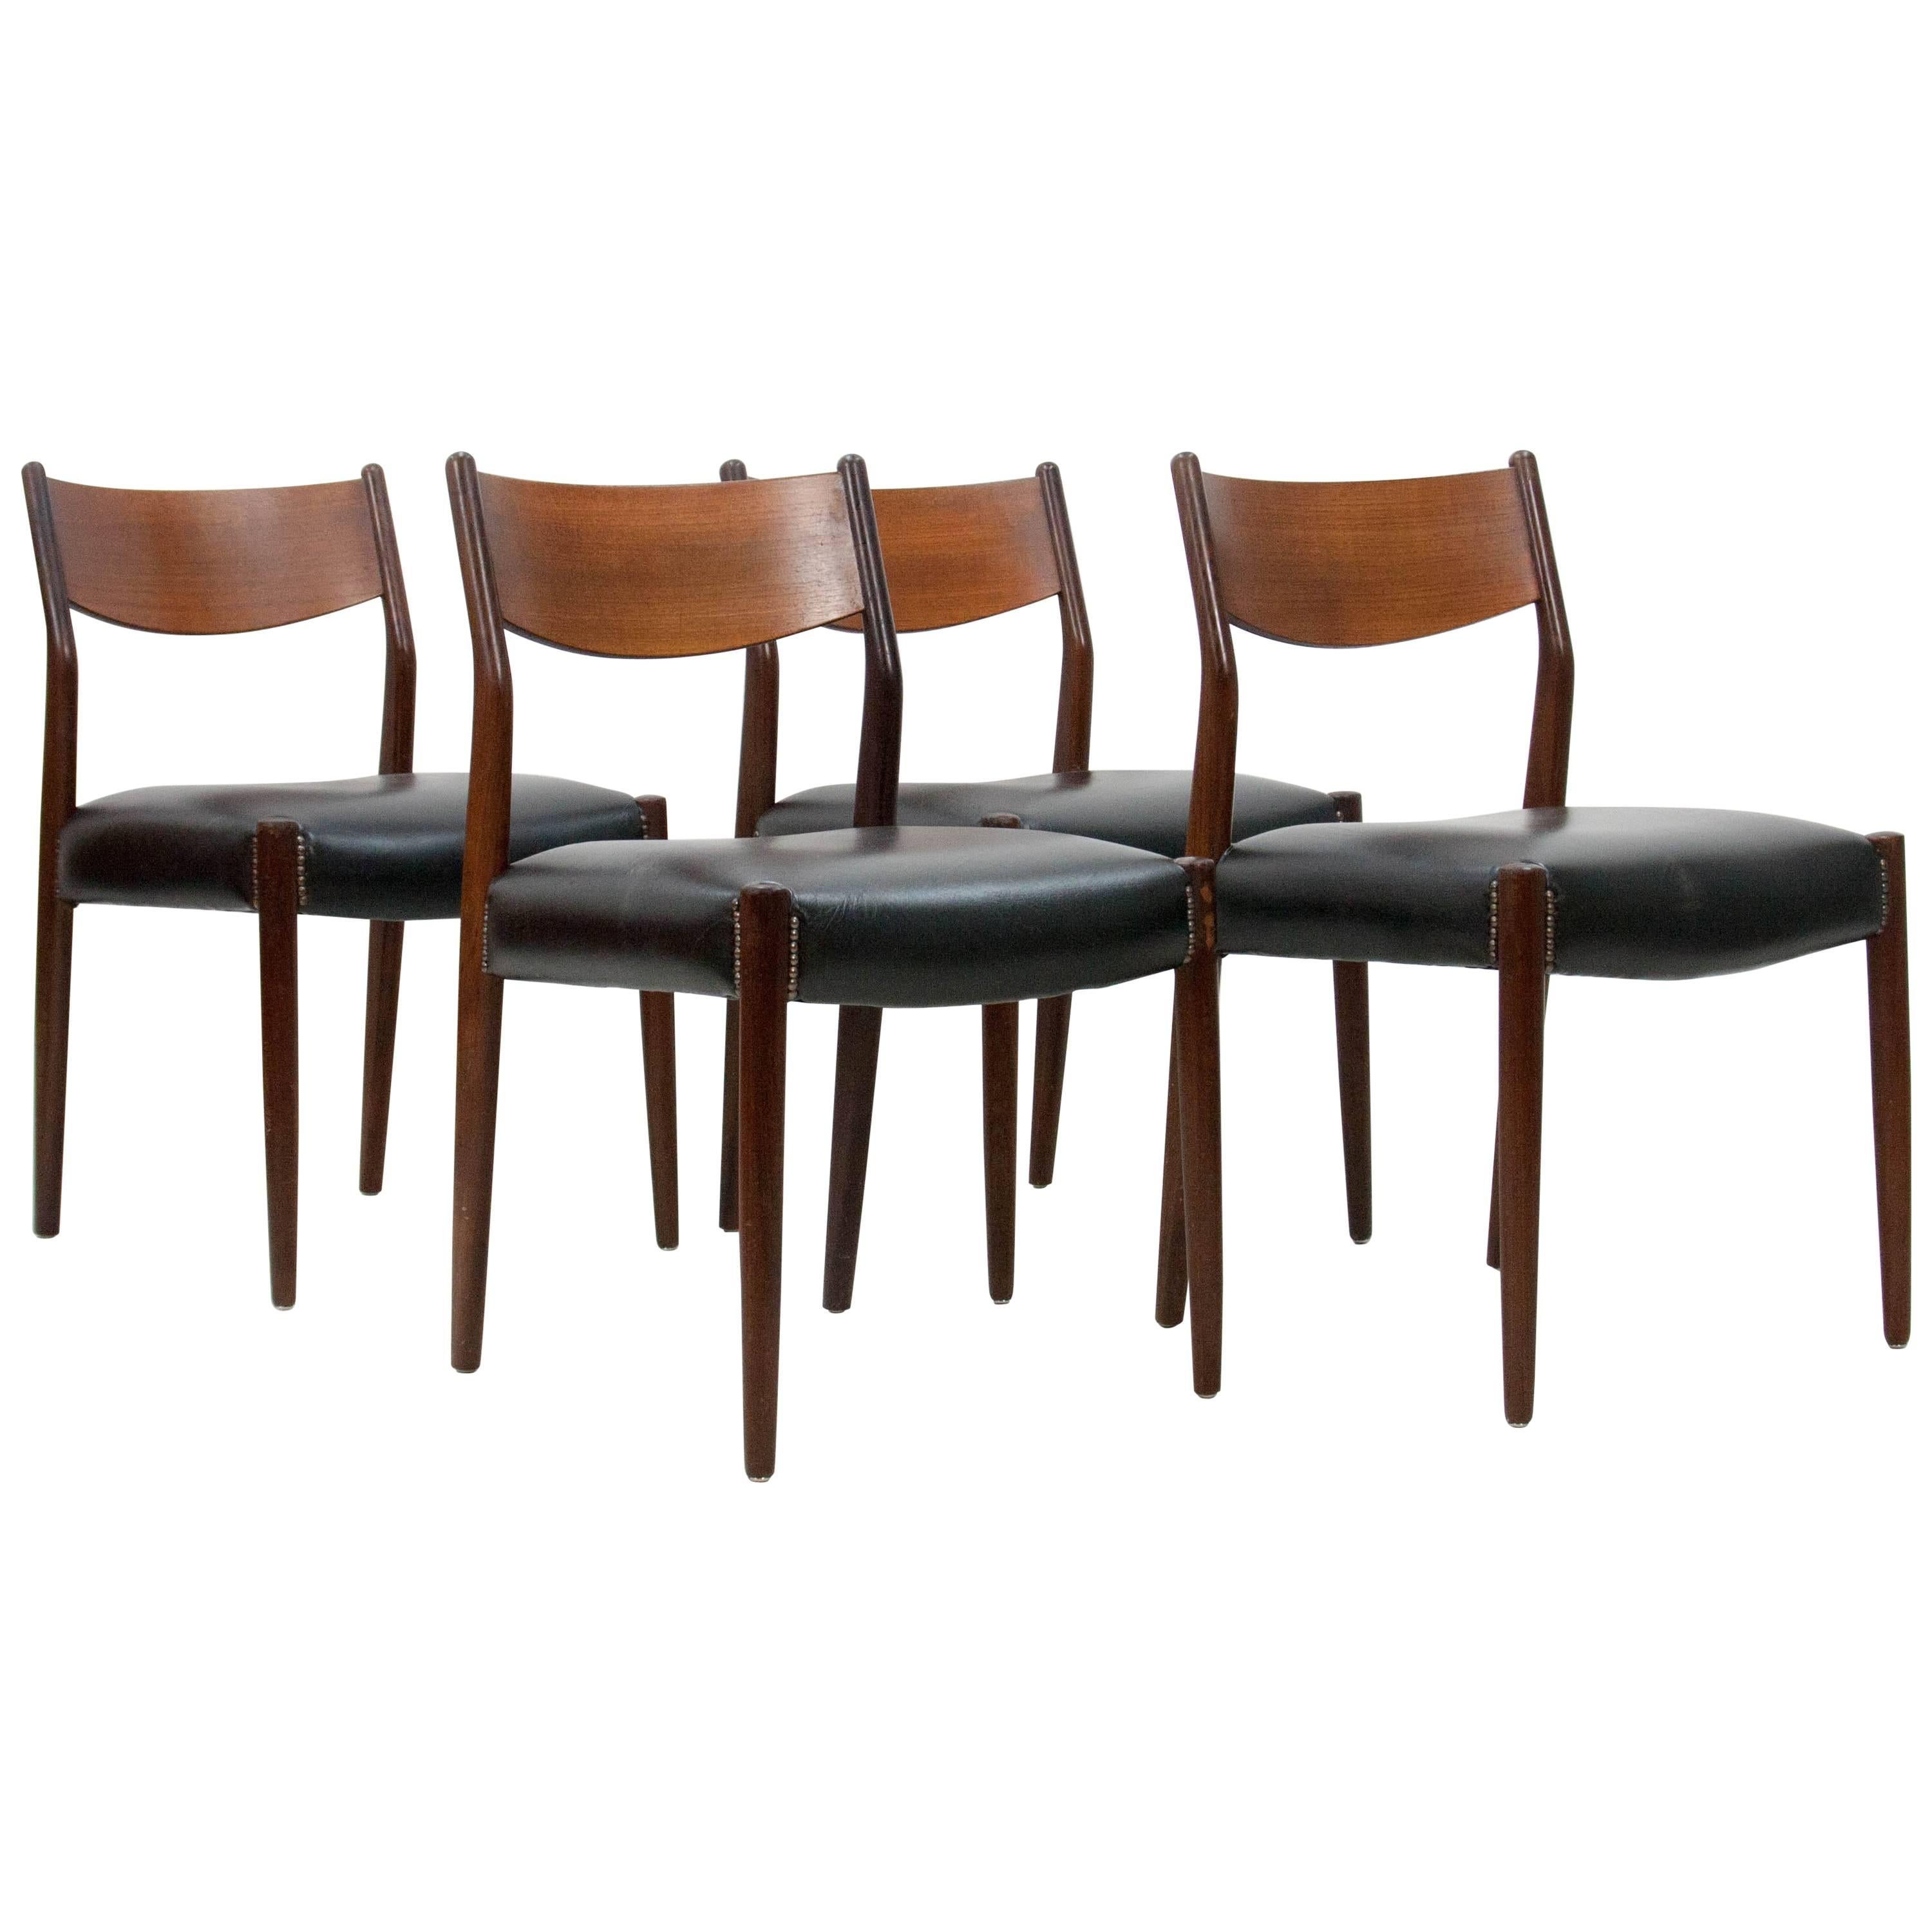 1960s Fritho Franeker dutch dining chairs For Sale  sc 1 st  1stDibs & 1960s Fritho Franeker dutch dining chairs For Sale at 1stdibs